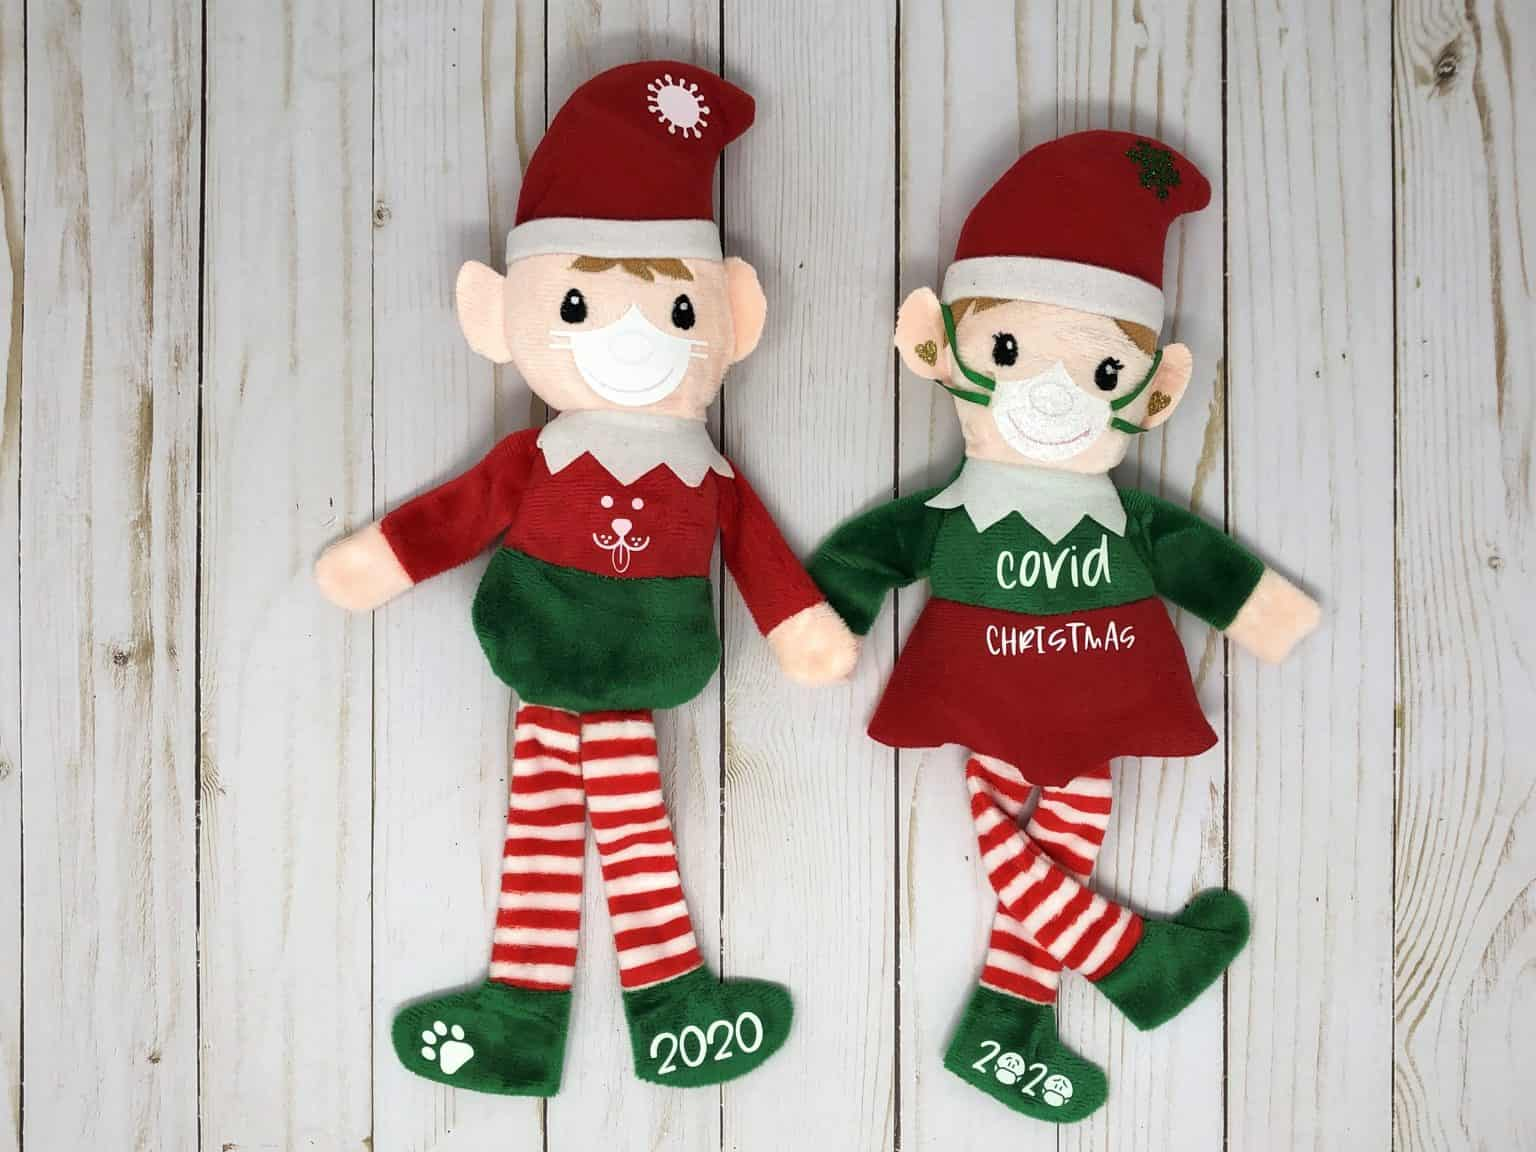 a covid christmas dollar tree elf and a fun one with a dog face and dog paw design